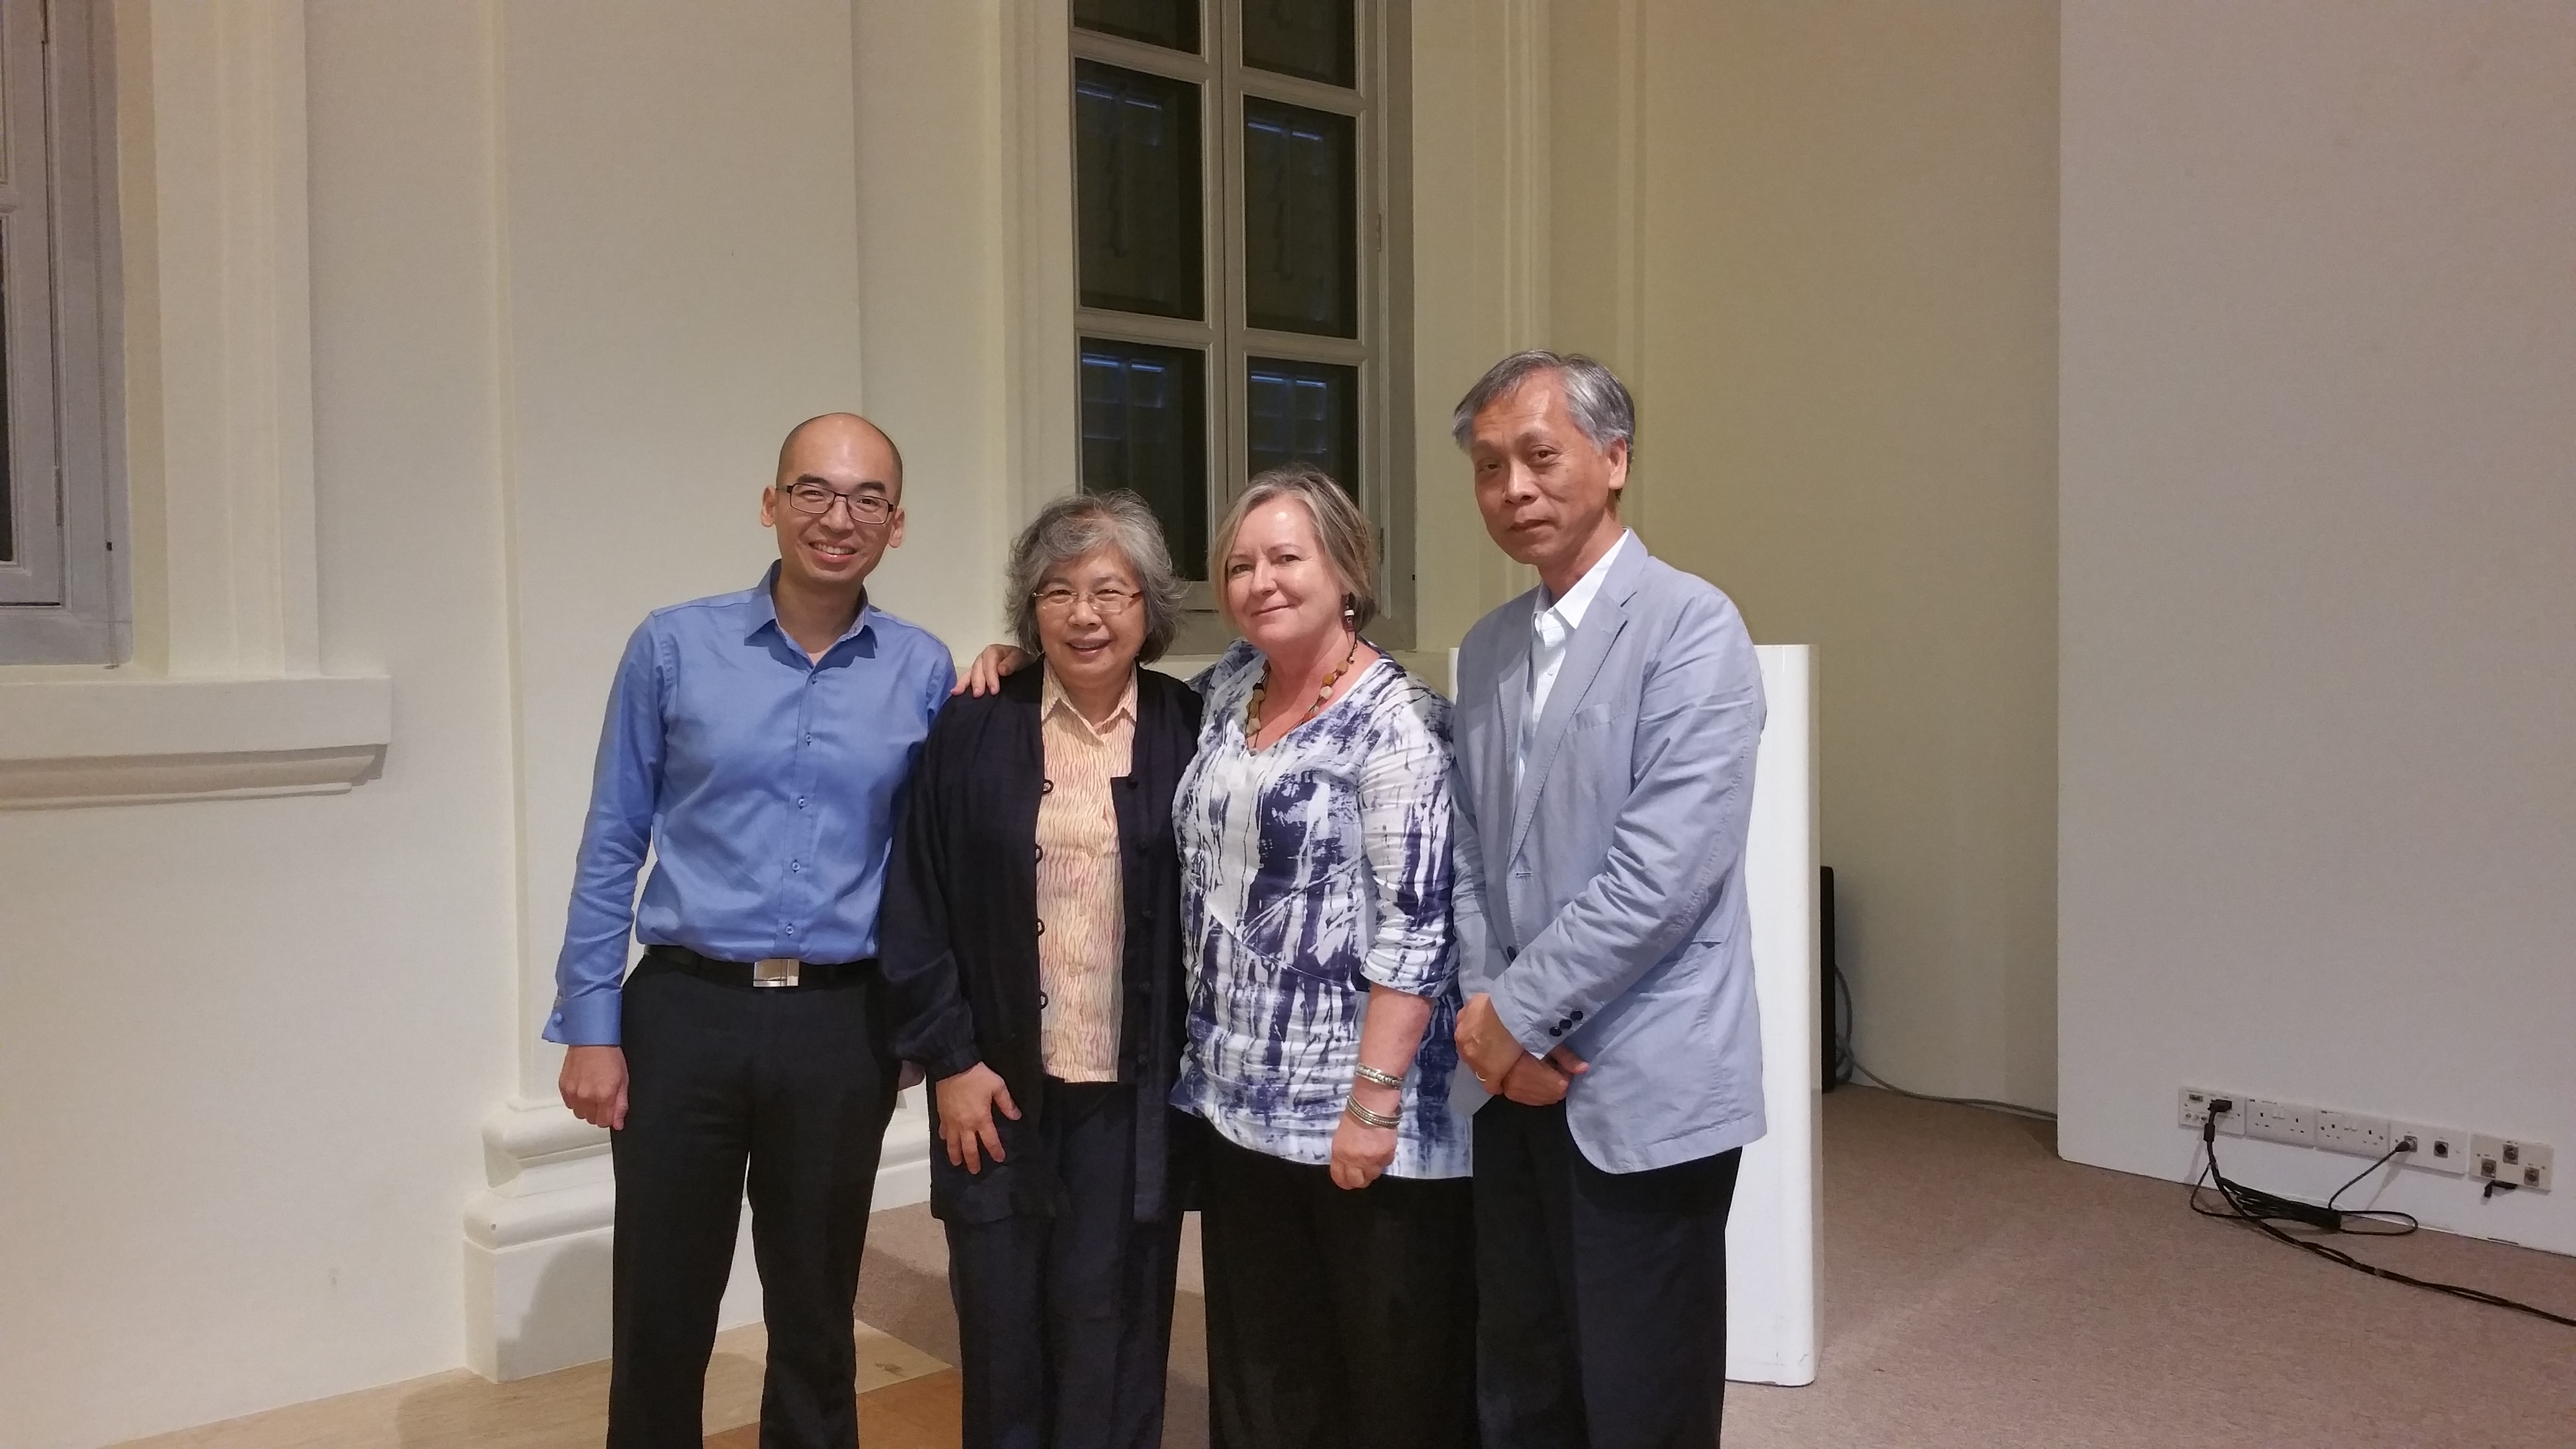 Susan McIntyre-Tamwoy with Singaporean government officers and researchers outside the National Museum of Singapore